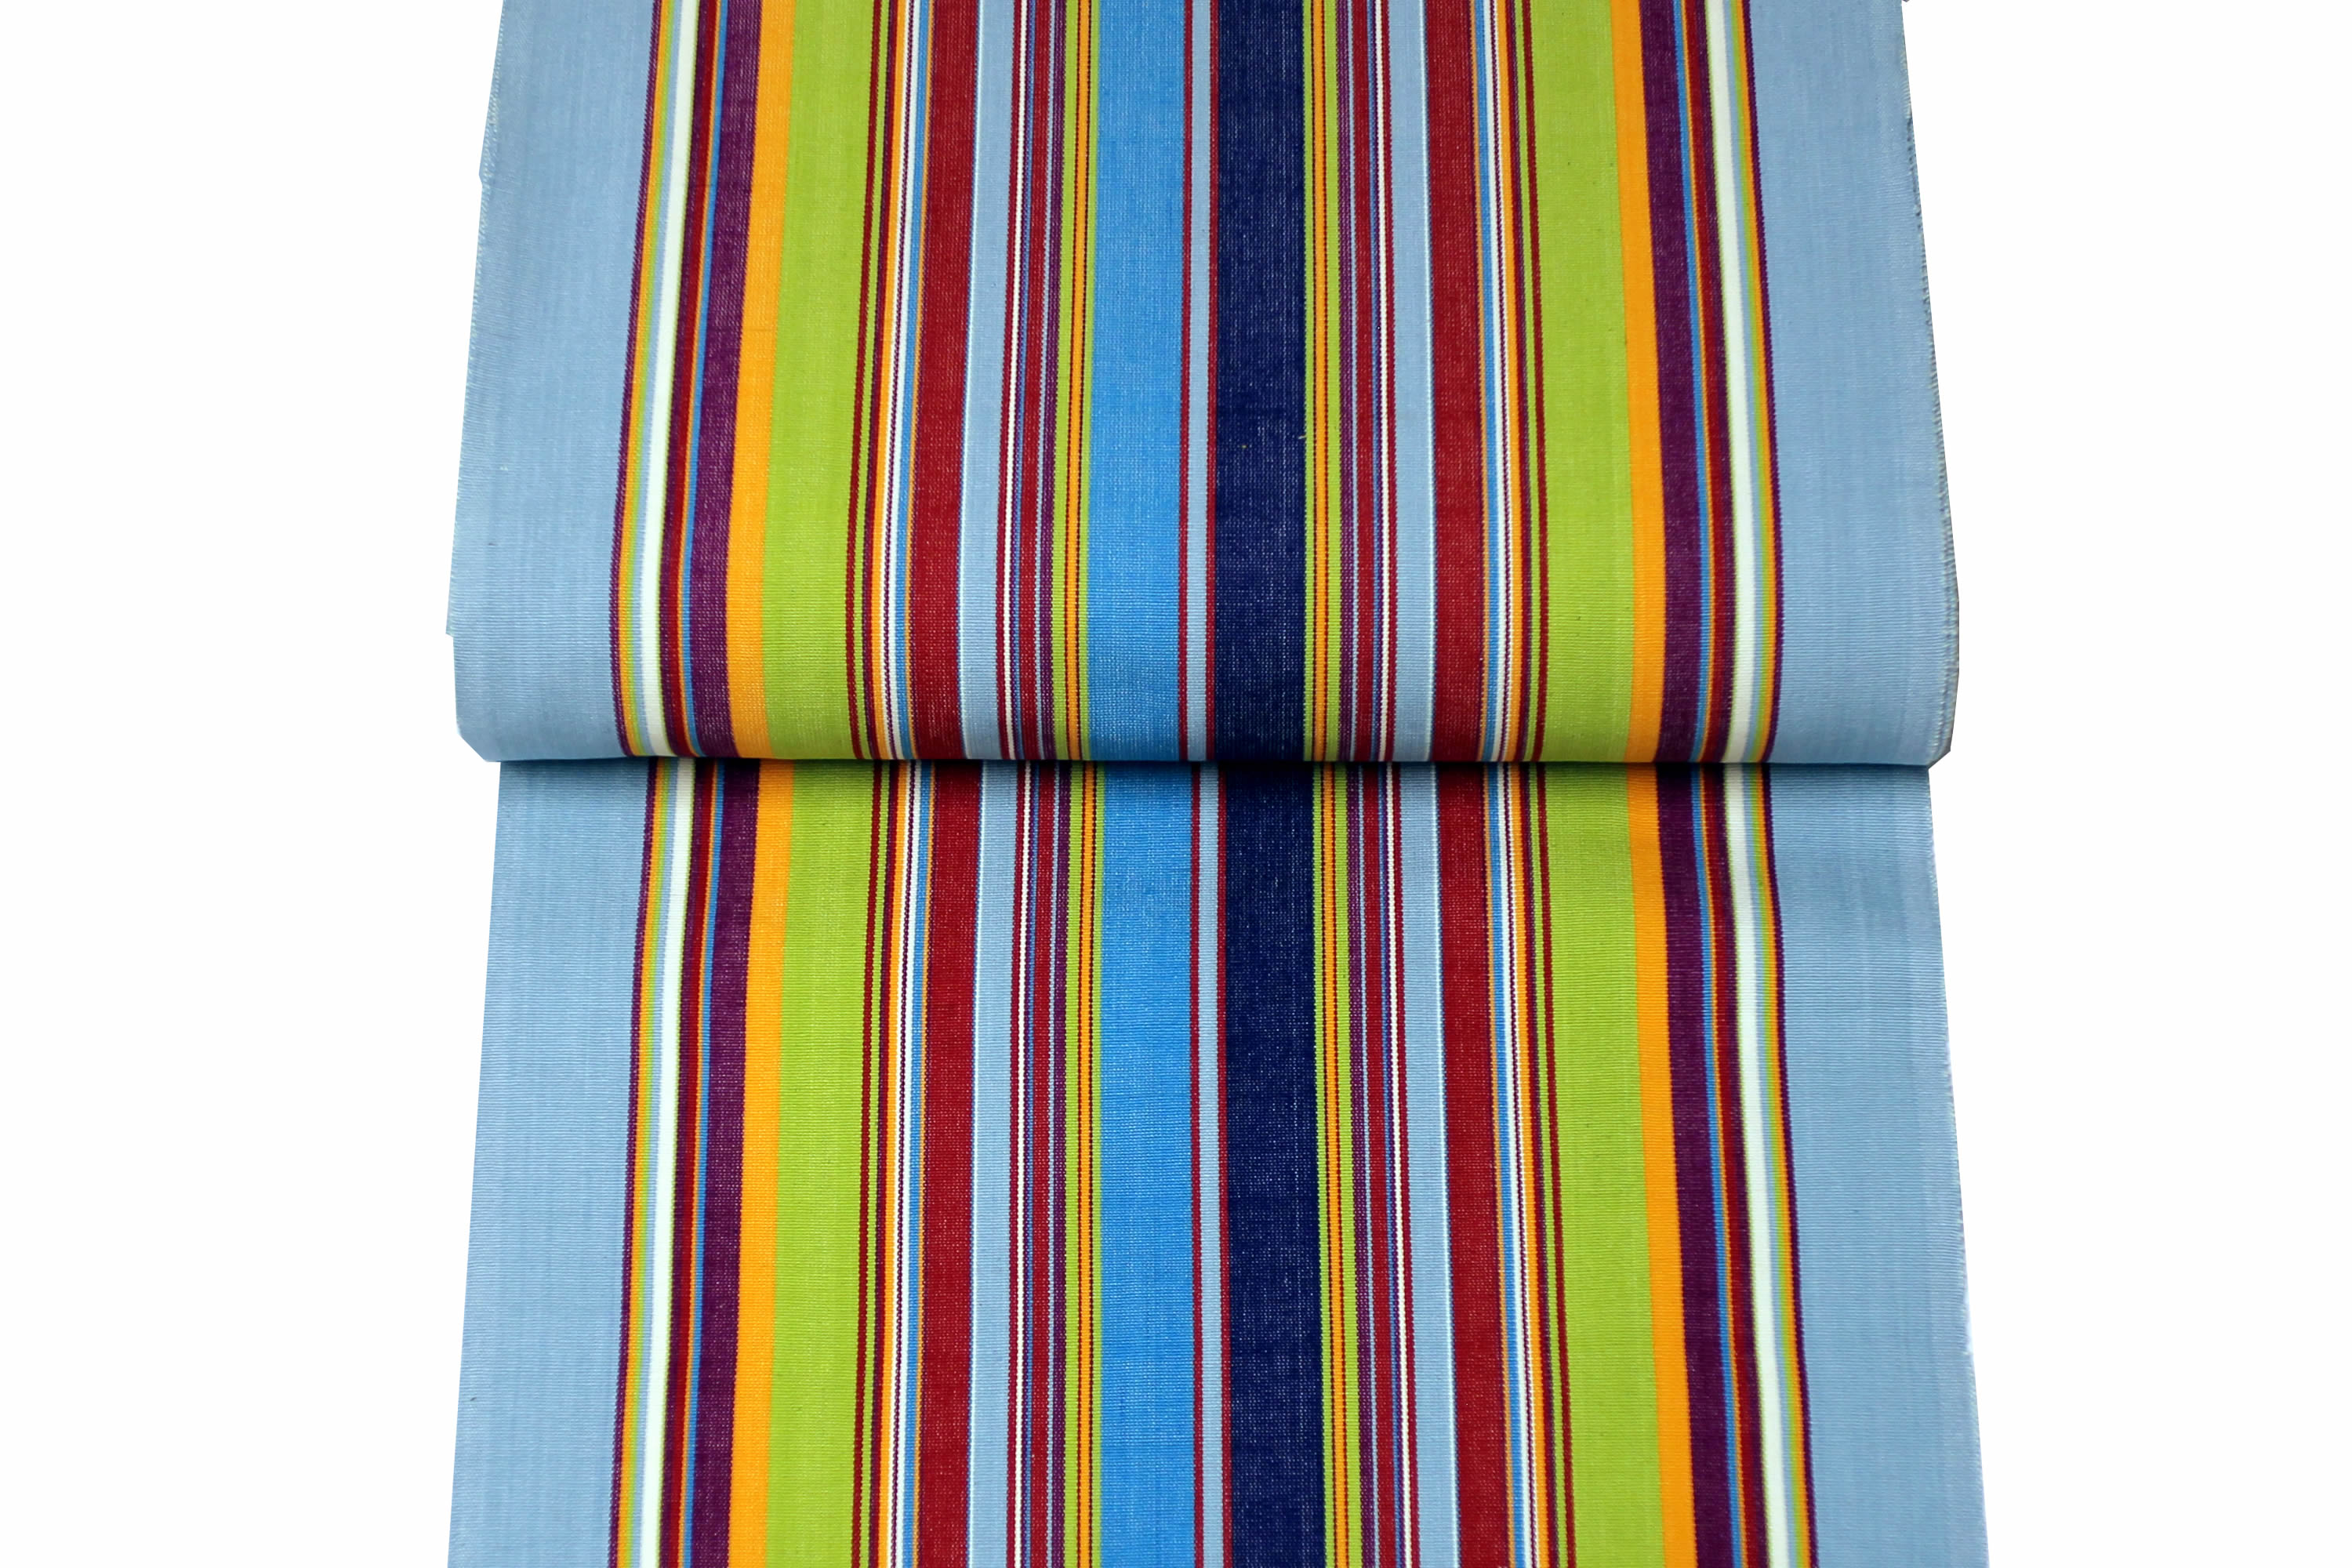 Pale Blue Deckchair Canvas | Deckchair Fabrics | Striped Deck Chair Fabrics Flamenco Stripes